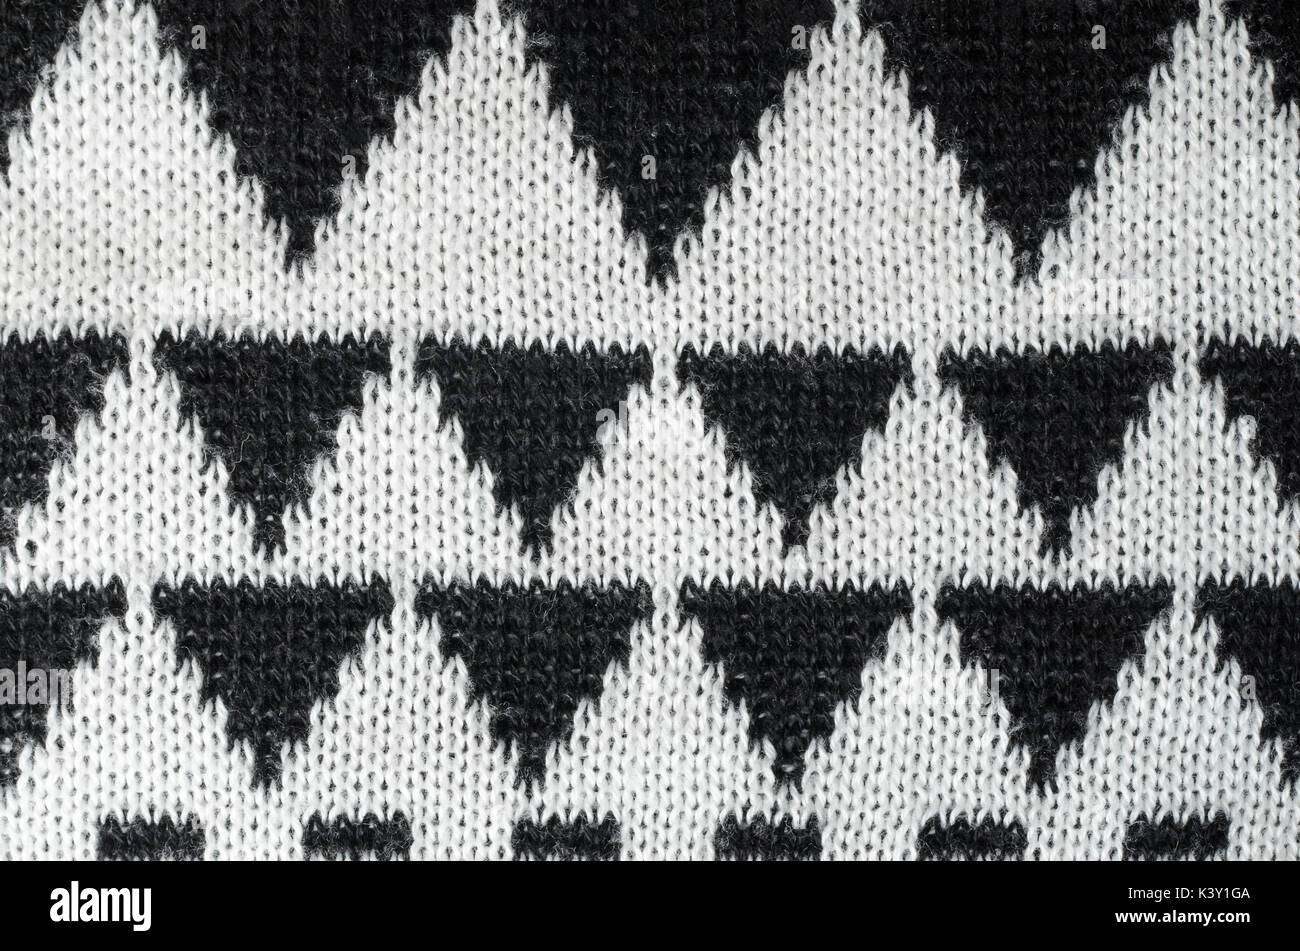 Close Up Black And White Hand Knitting Ornament Texture